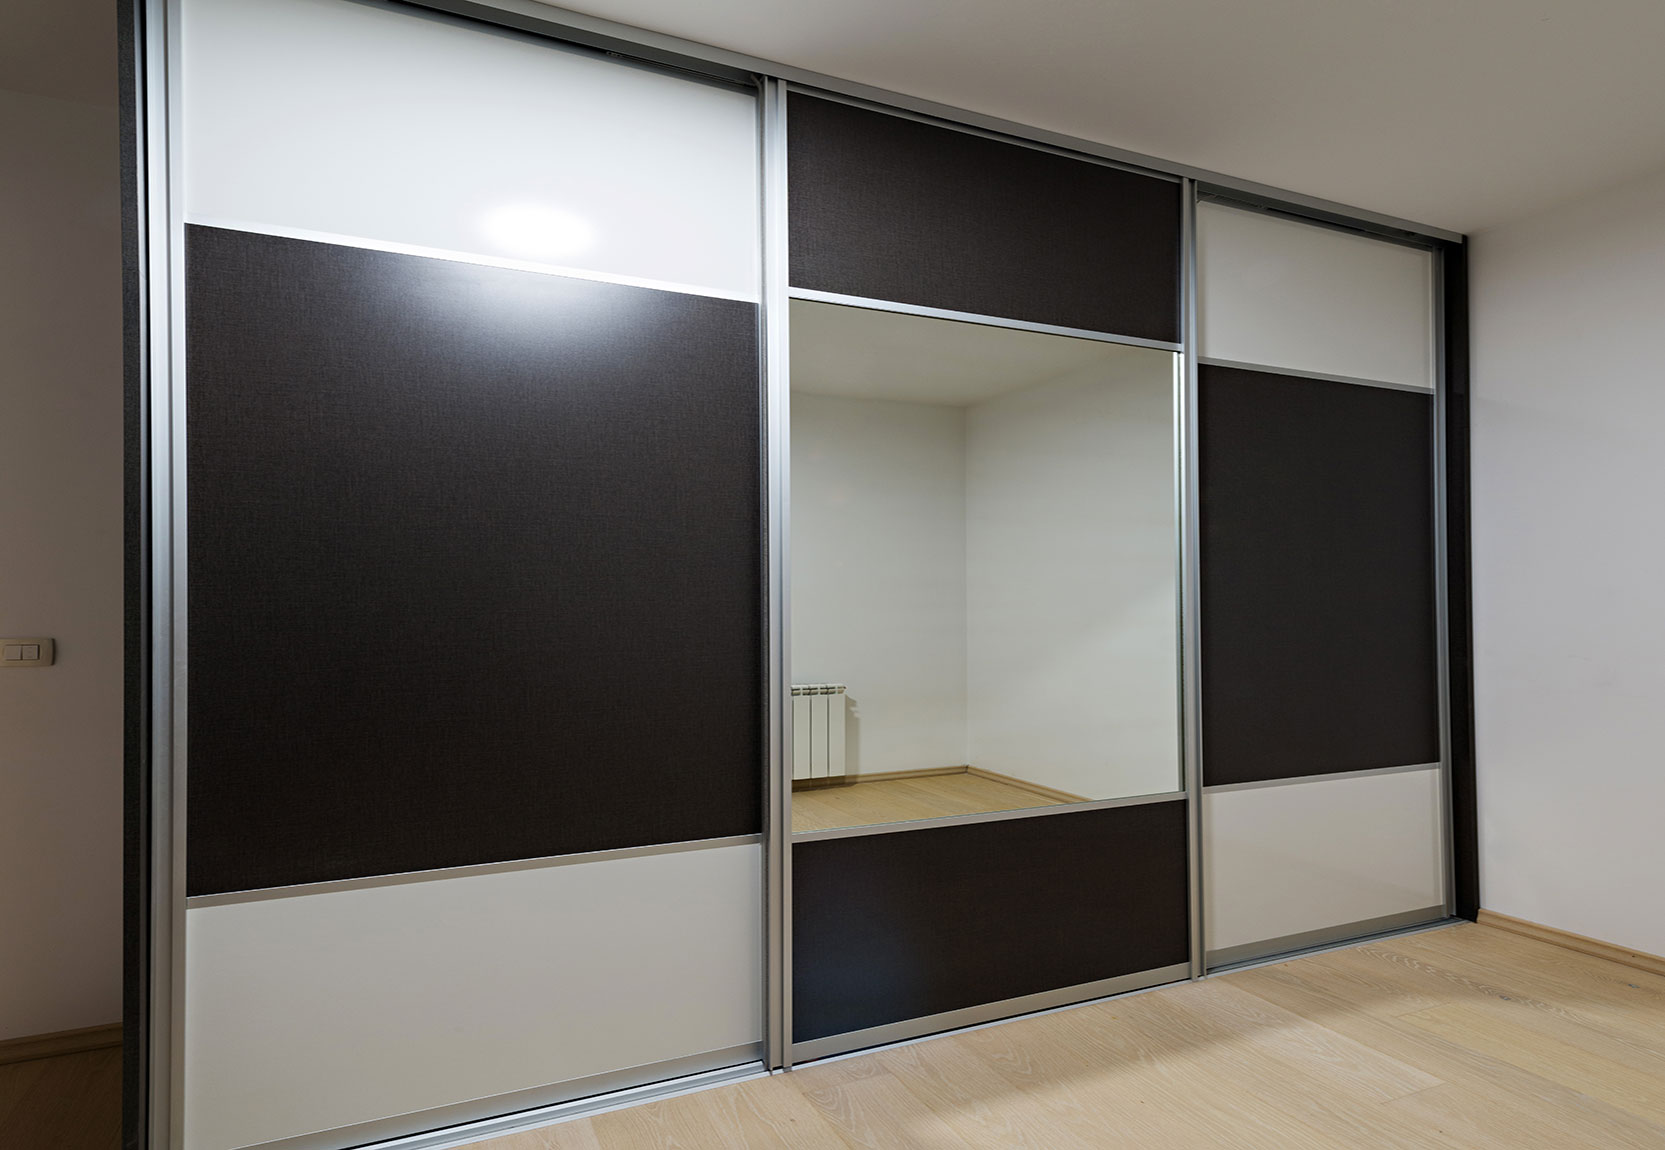 Laminate Wardrobe Design Accentuates The Room And Feel